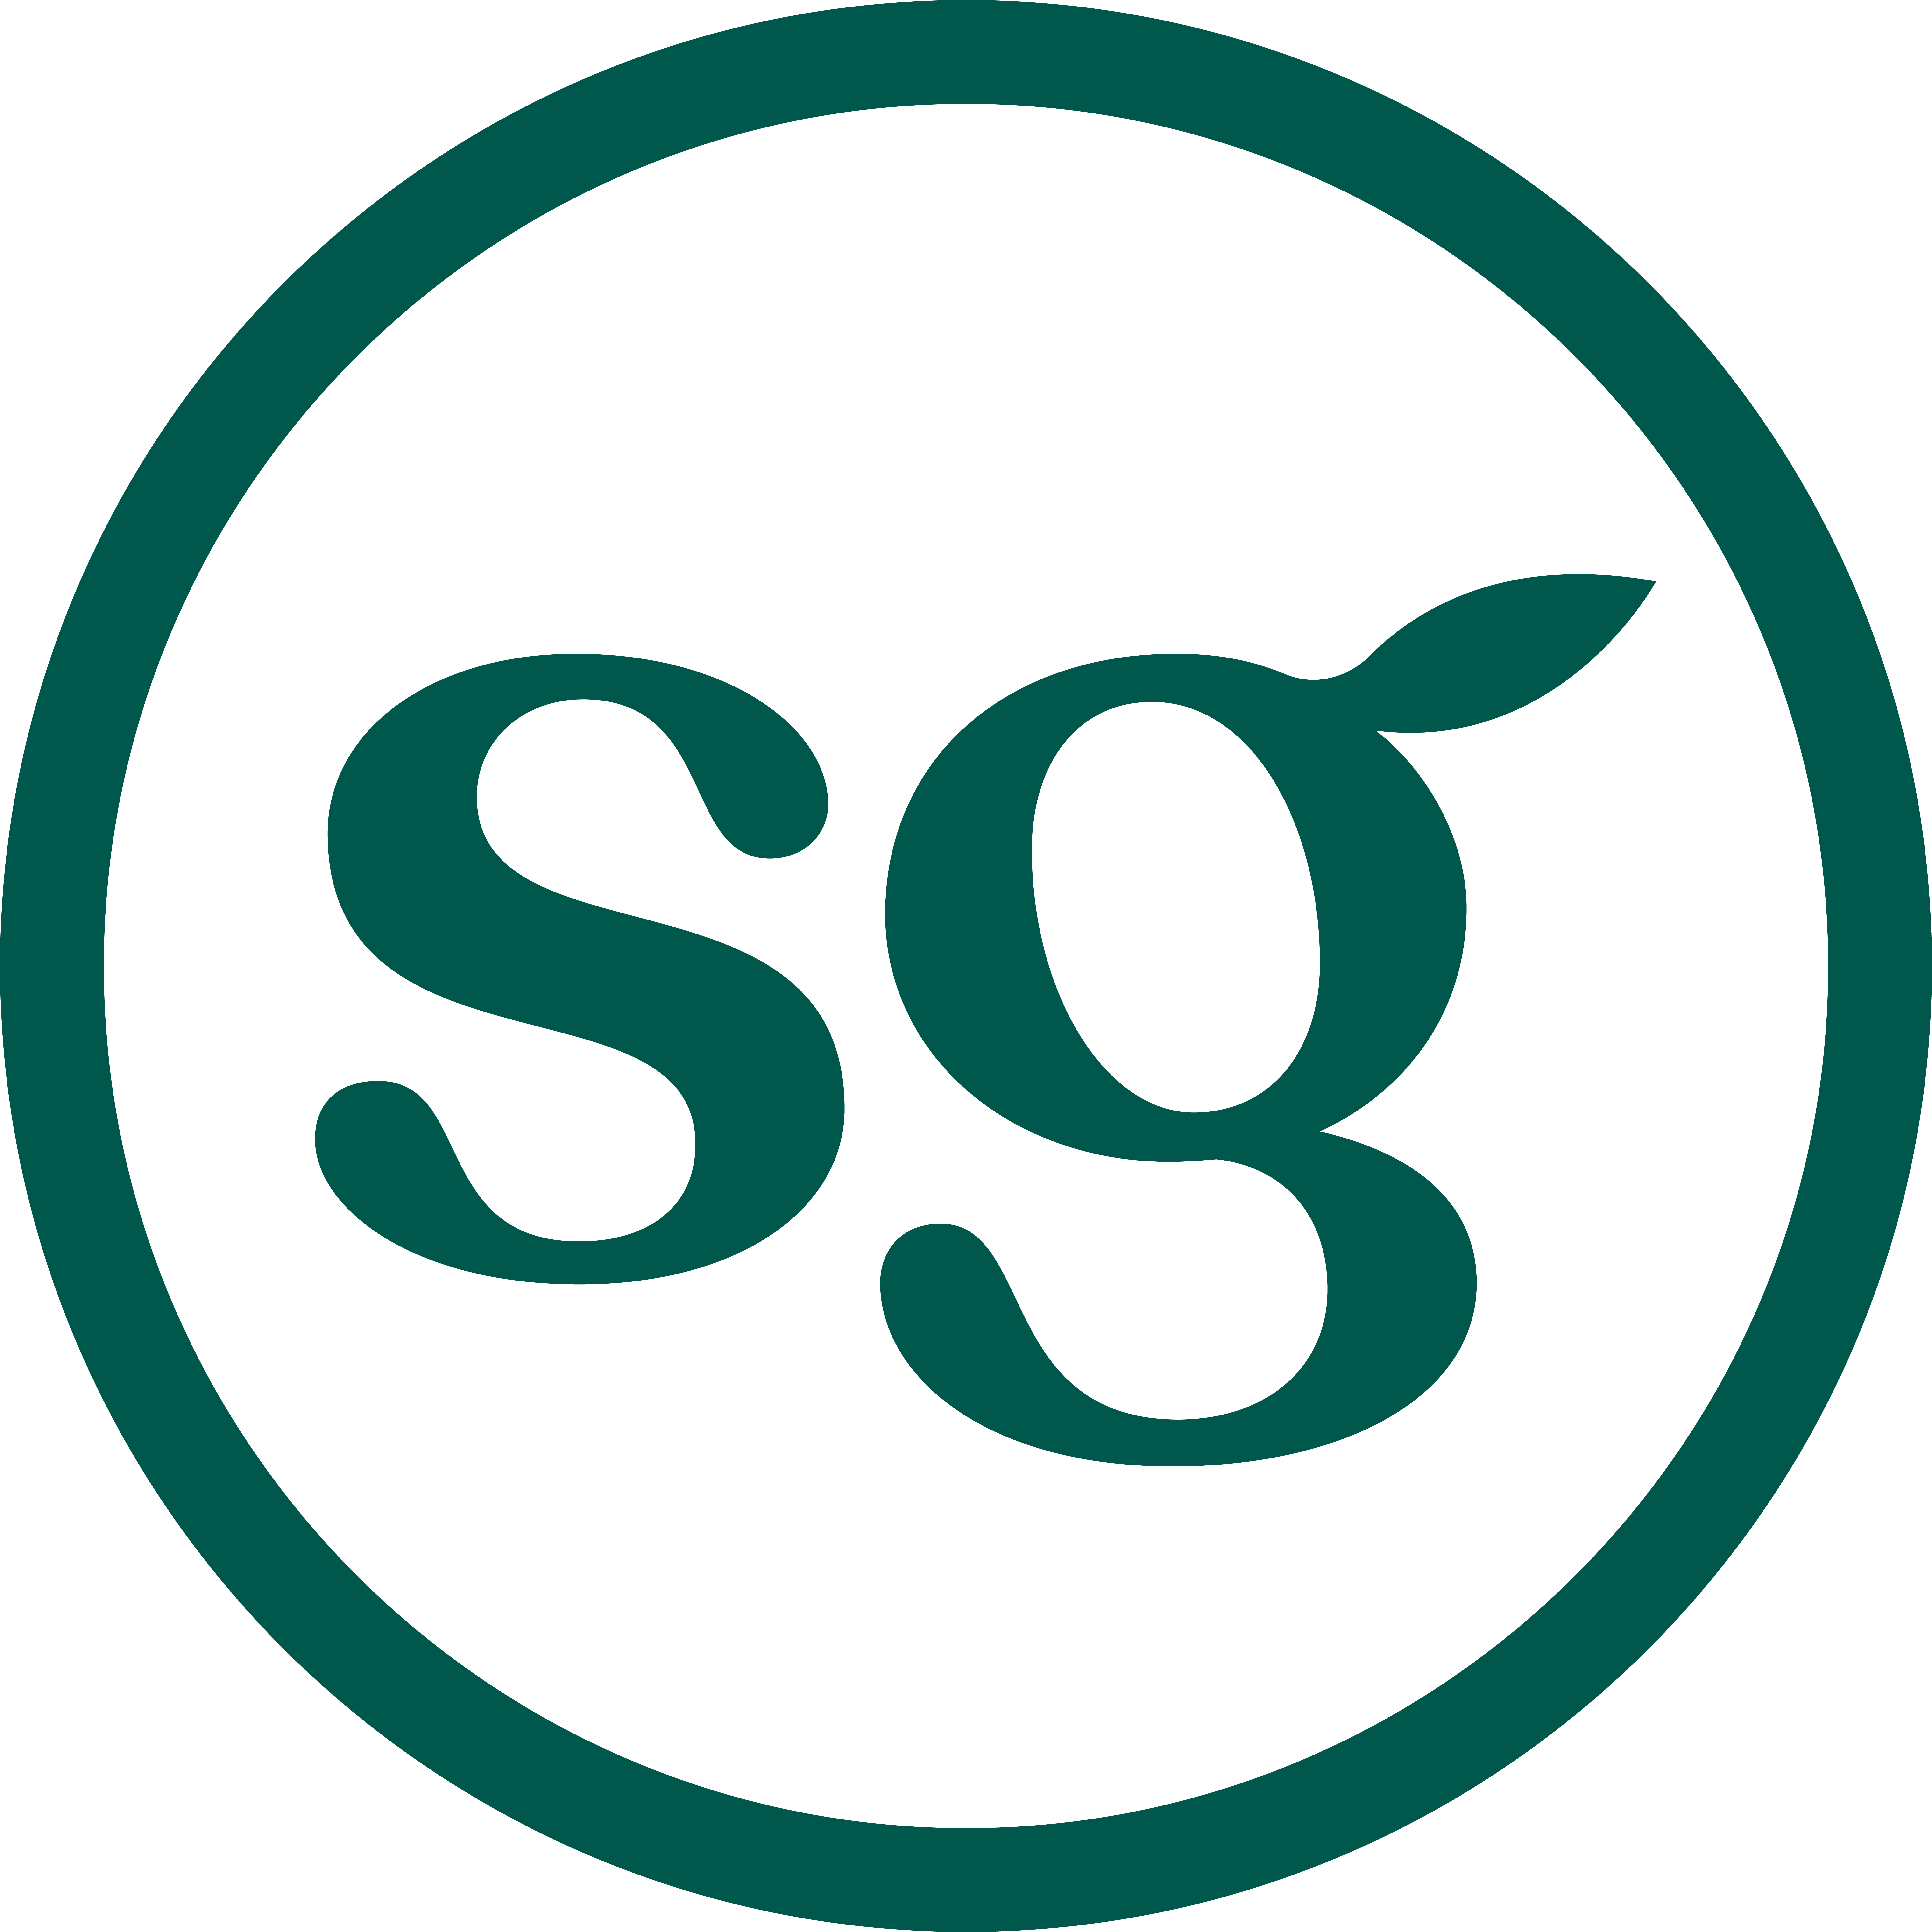 A dark green circle containing the letters s and g